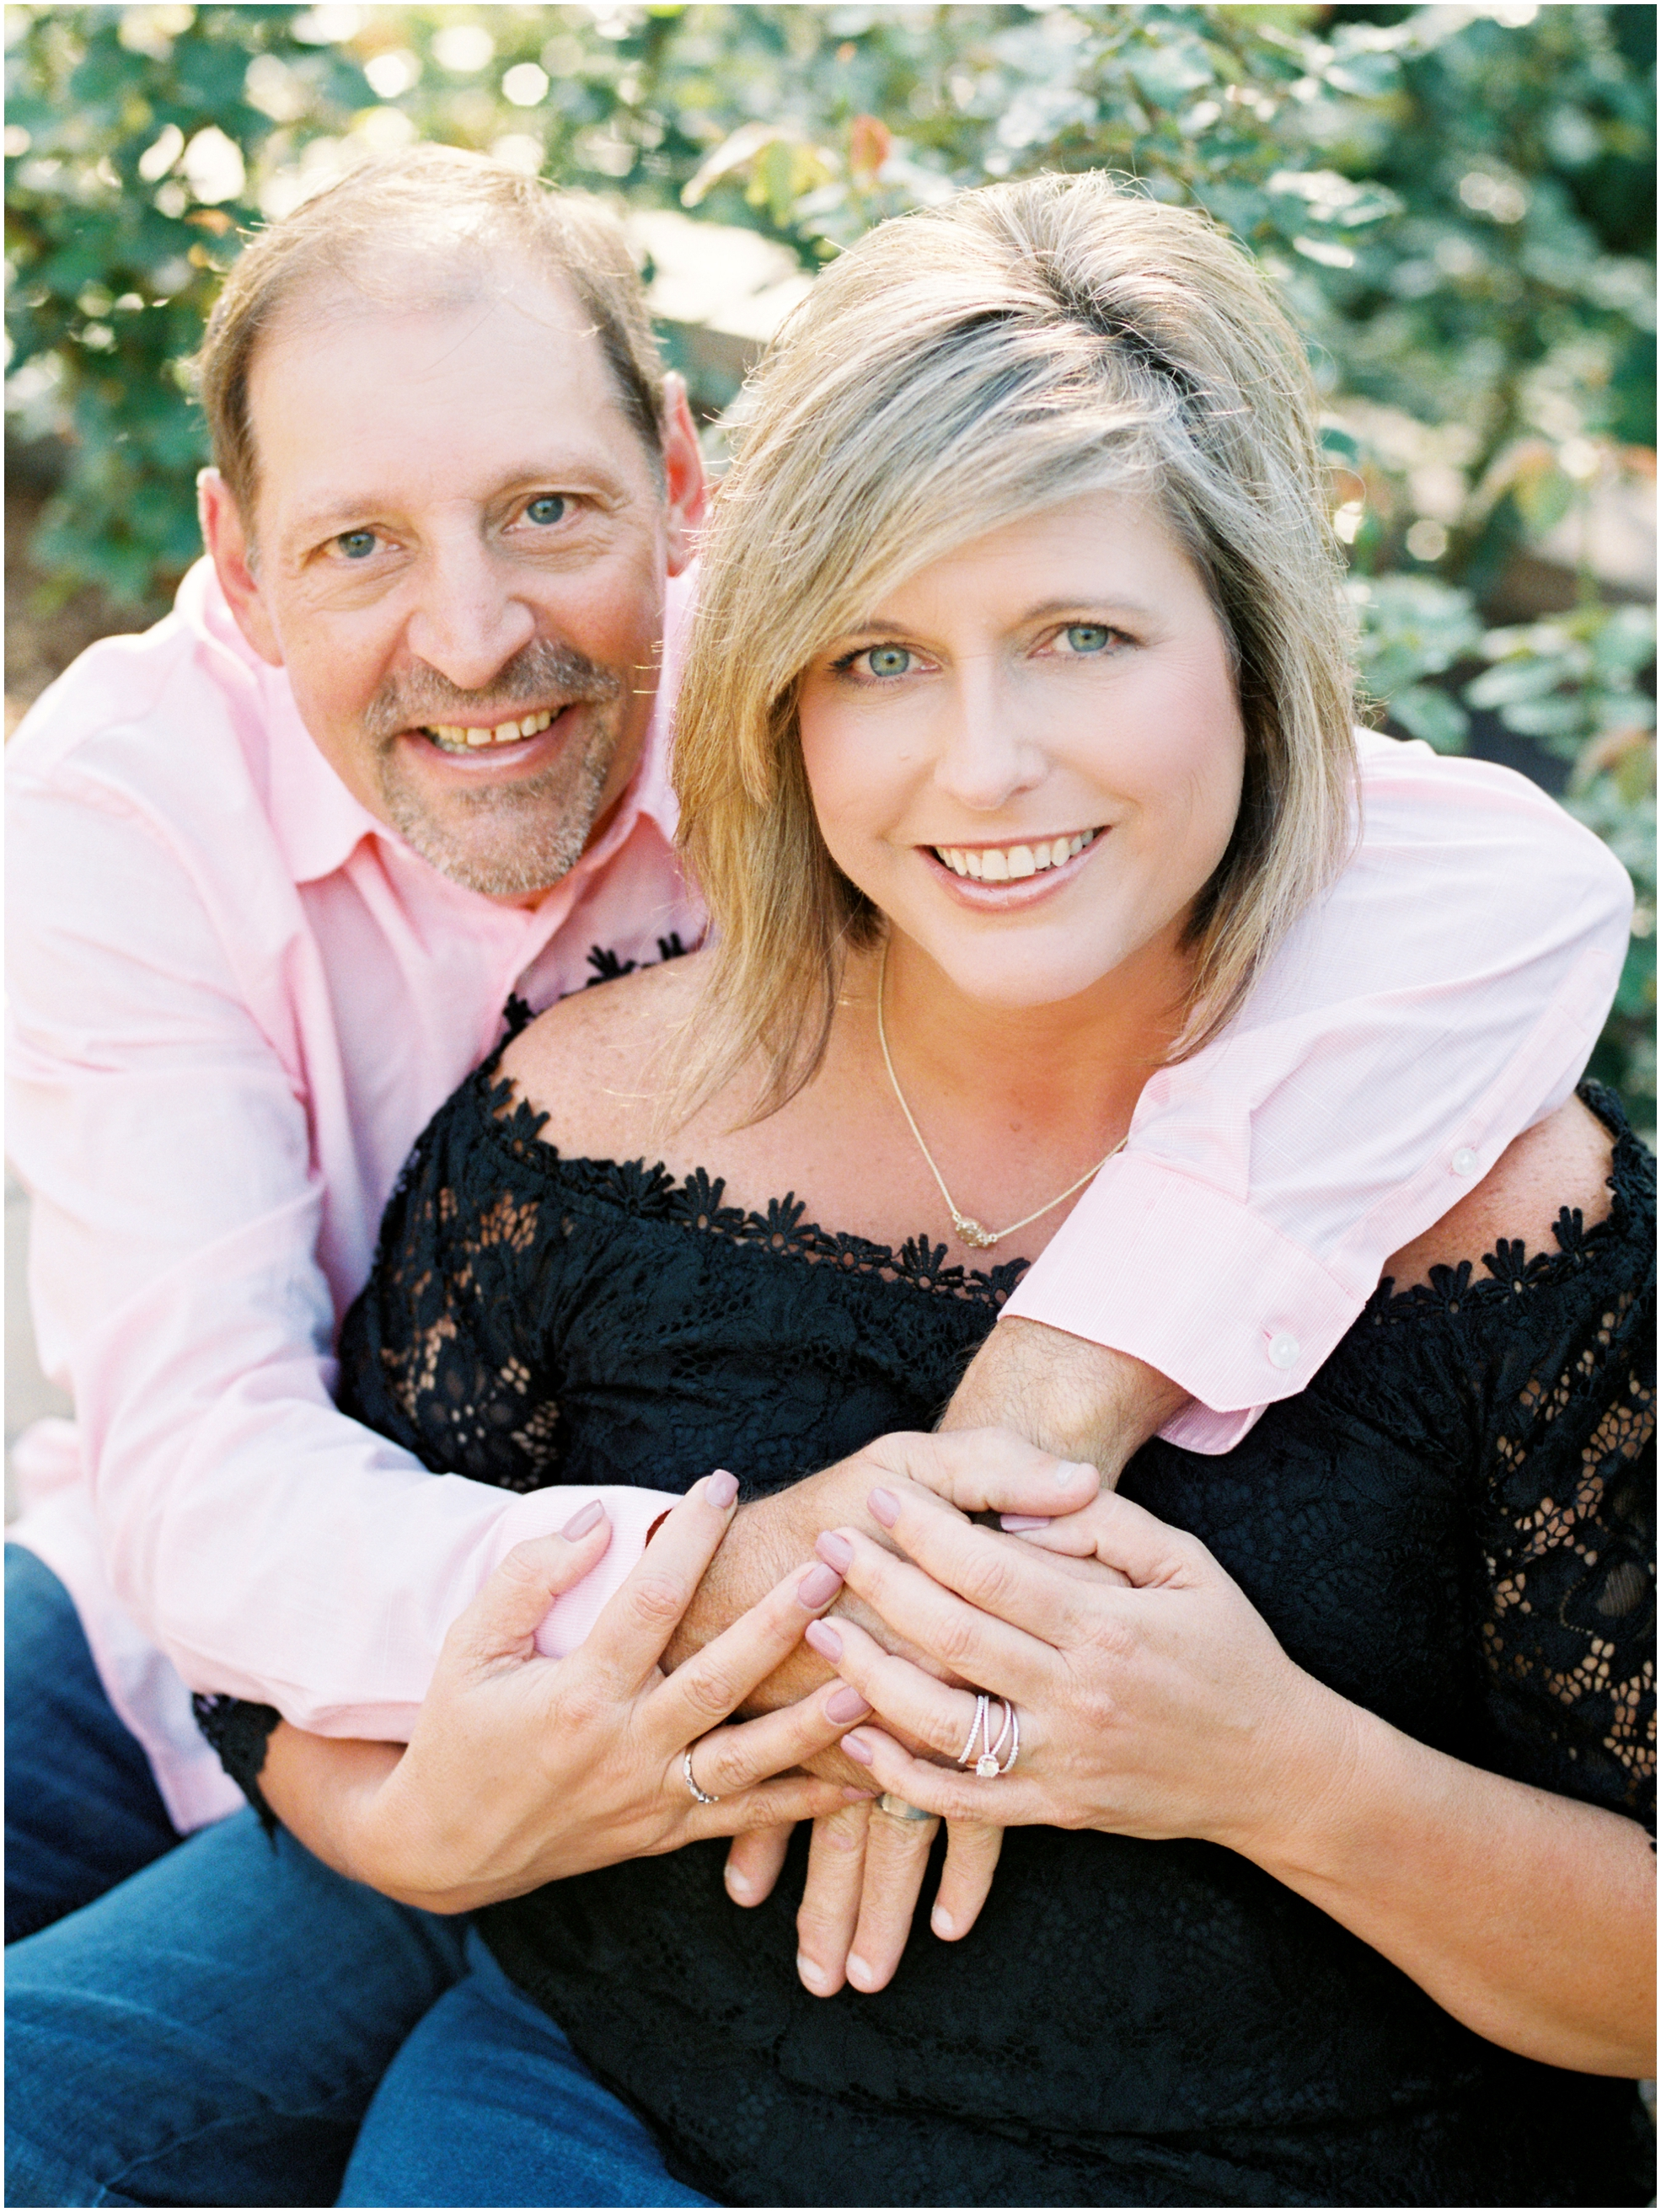 Lisa Silva Photography- Jacksonville, St. Augustine, Amelia Island, Ponte Vedra Beach, North East Florida Fine Art Film Photographer- Anniversary Session at Washington Oaks in Palm Coast, Florida_0040.jpg